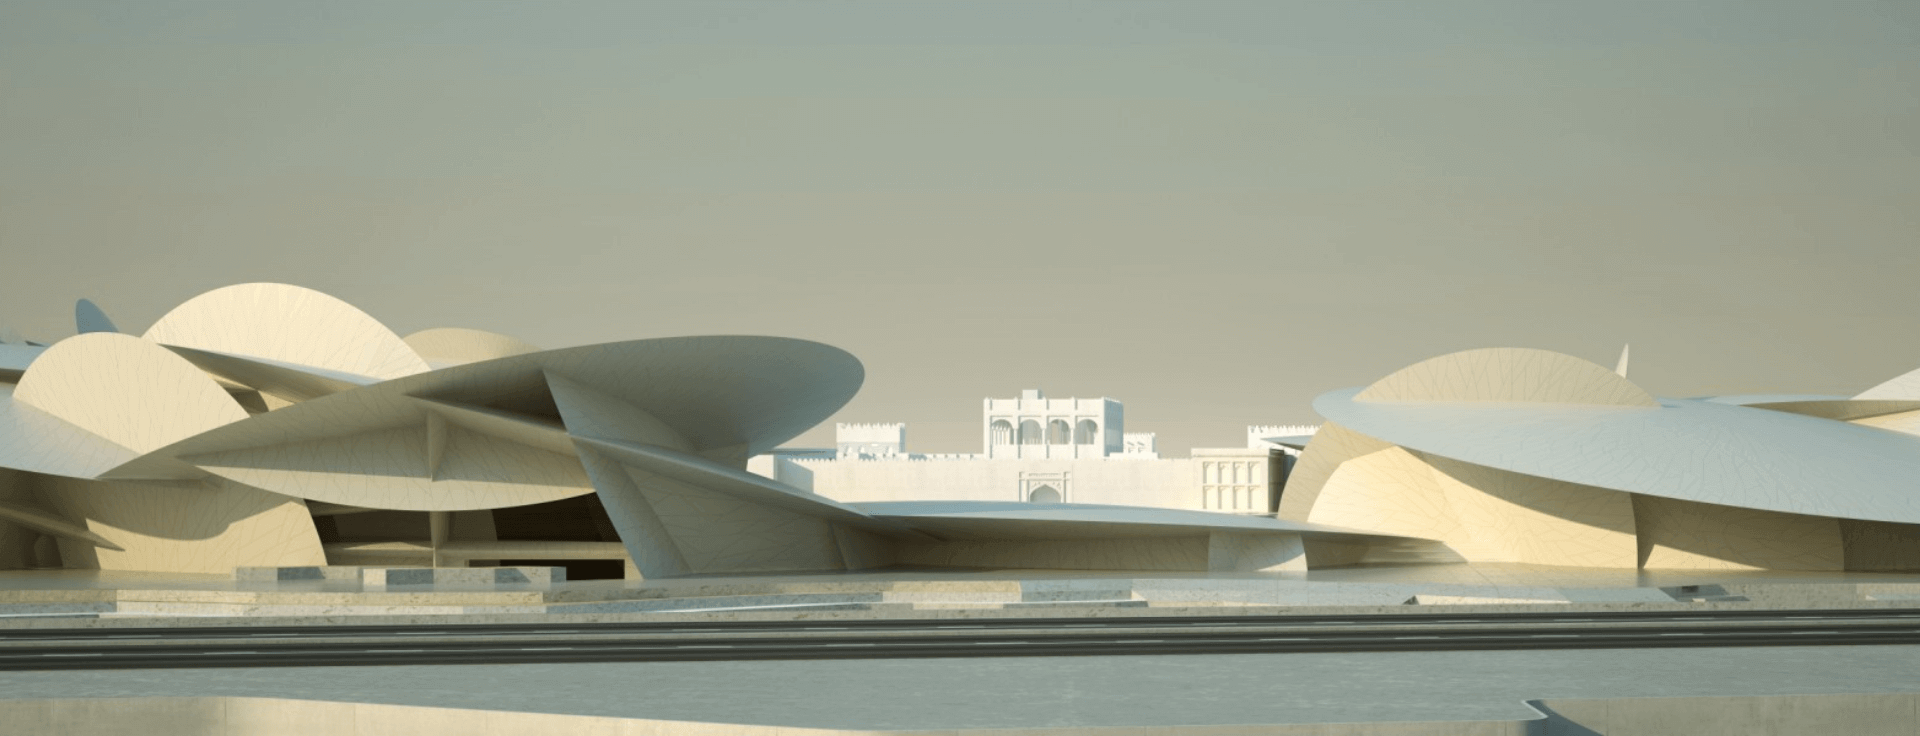 National Museum of Qatar Image Banner